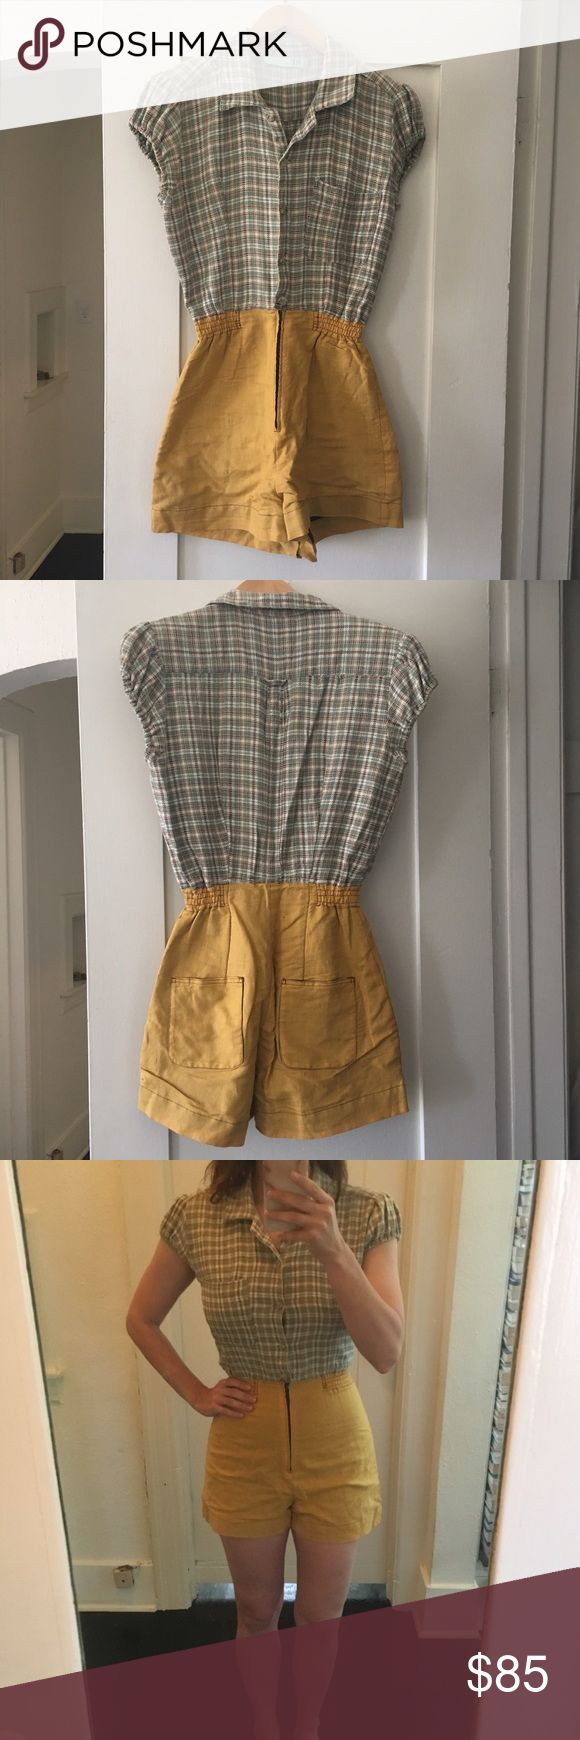 MANDATE OF HEAVEN romper insanely cute handmade romper from indie brooklyn designer MANDATE OF HEAVEN. size 4, EUC! repurposed flannel top with princess sleeves and super flattering high waisted mustard short! perfect for summer ☀️ Anthropologie Shorts